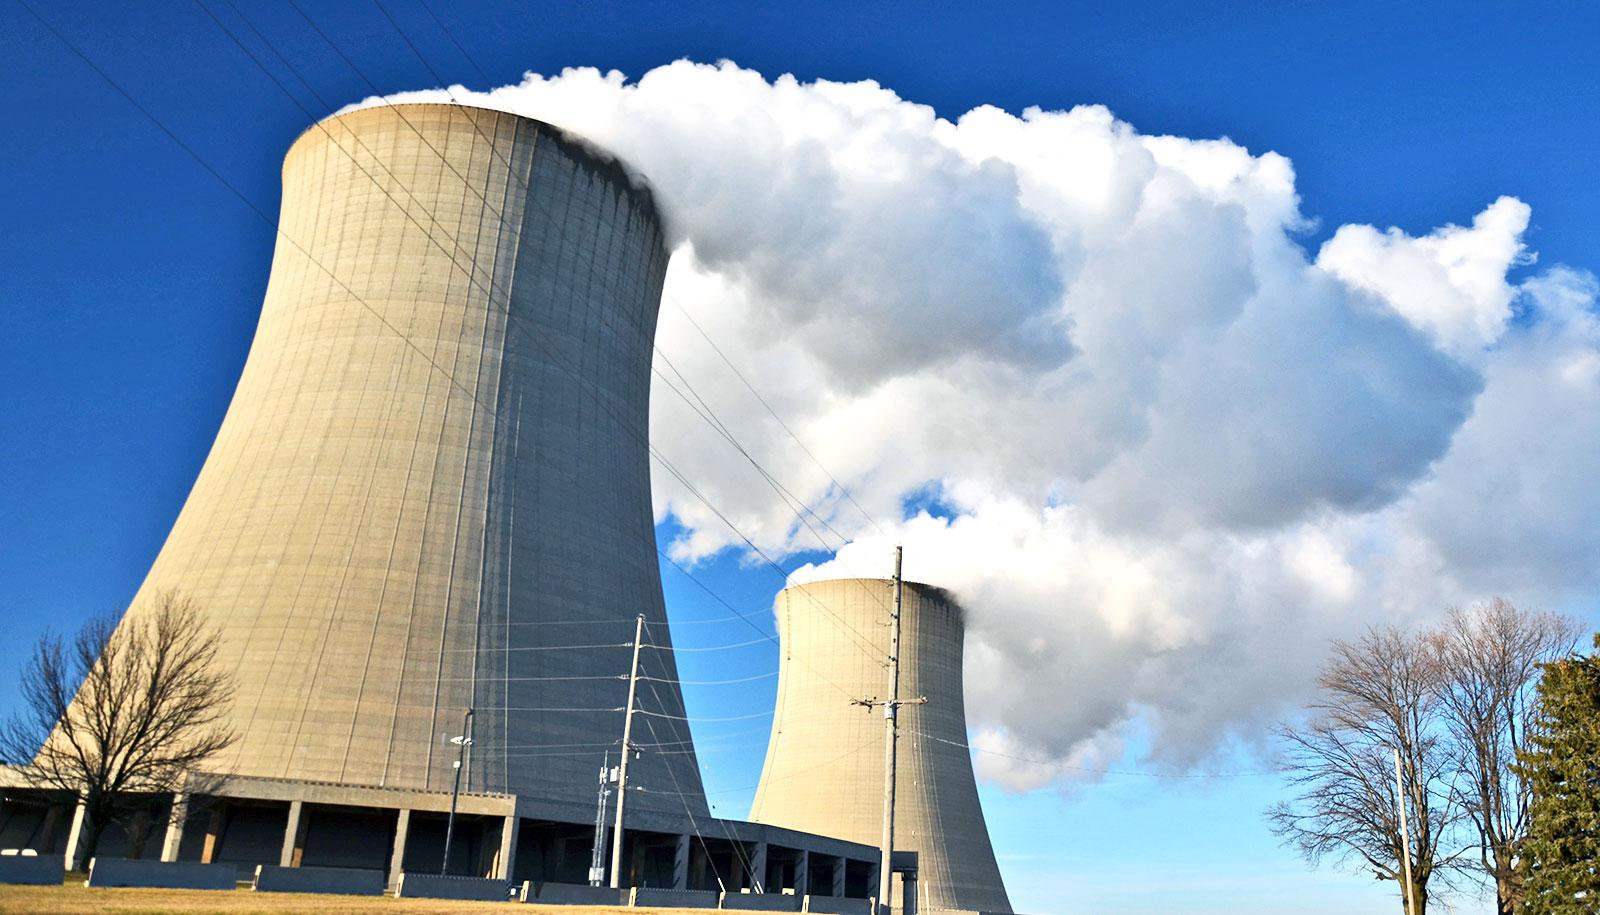 looming nuclear power plant cooling tower